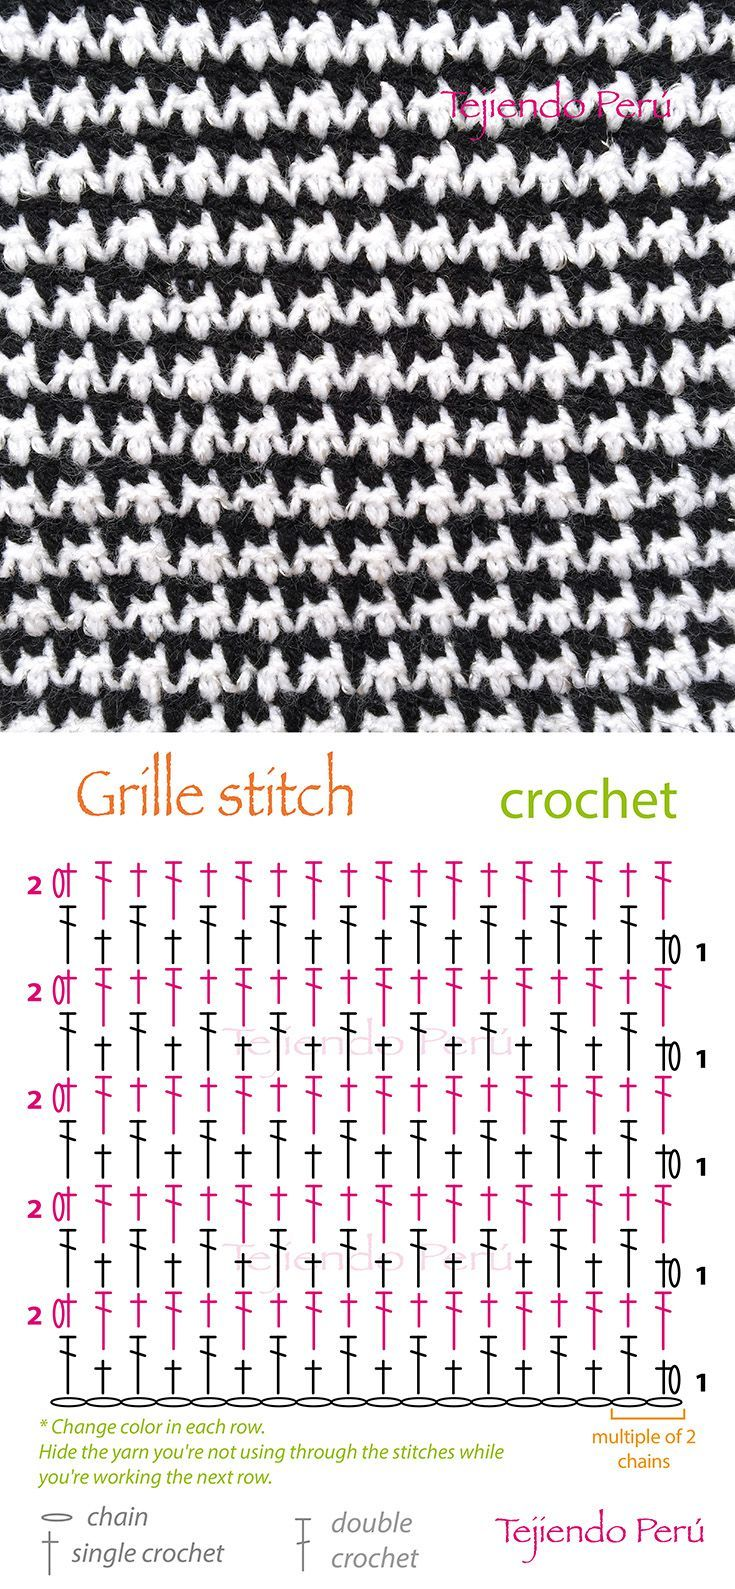 Crochet: grille stitch diagram (pattern or chart)!